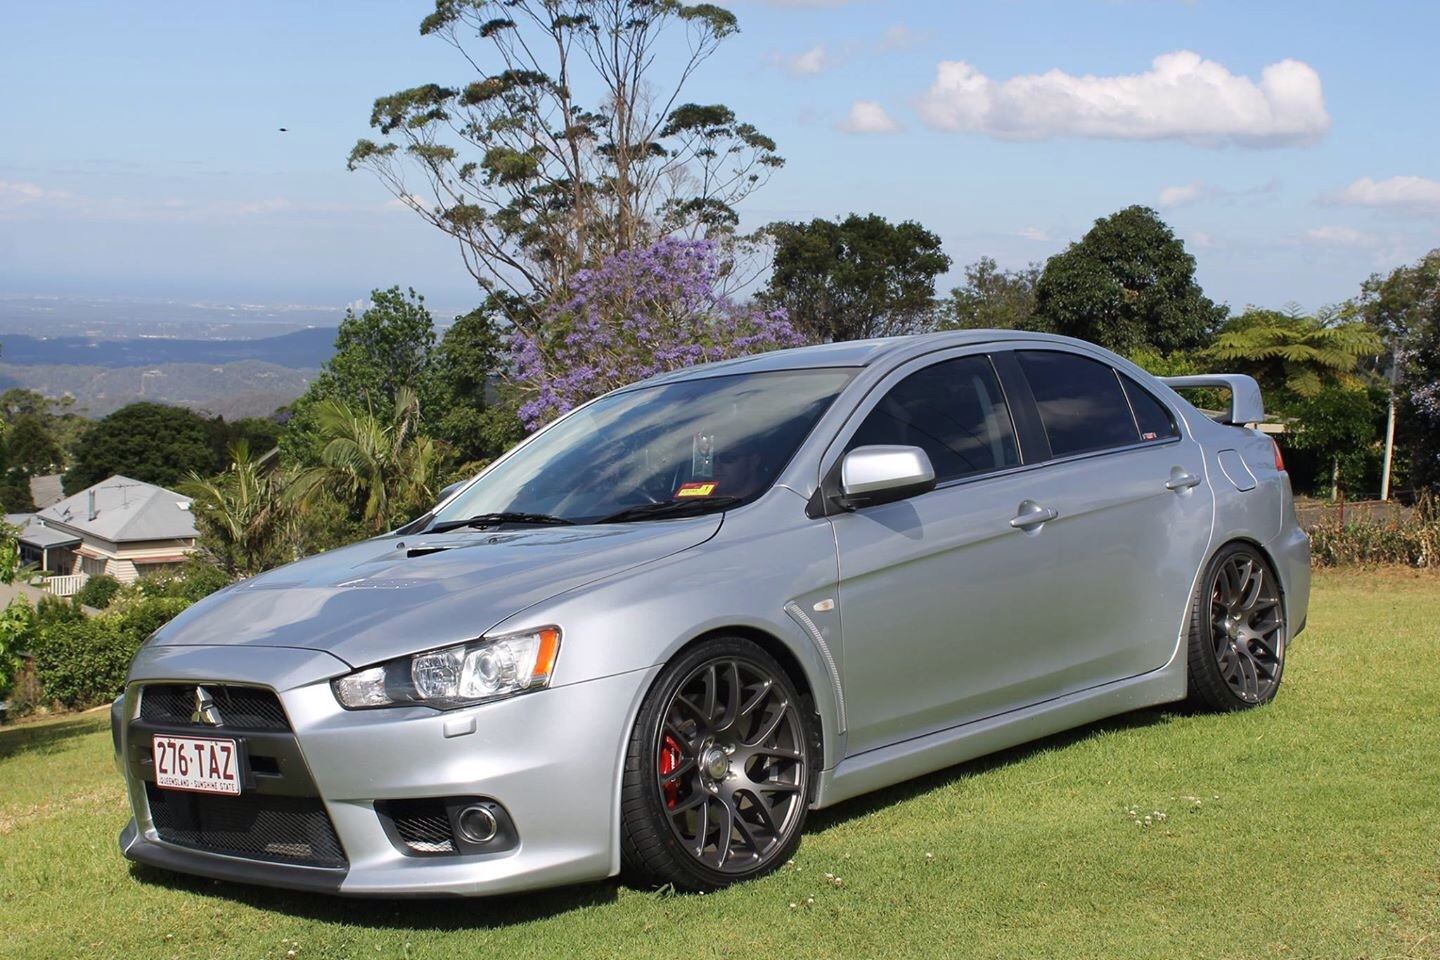 2008 mitsubishi lancer evolution mr cj for sale qld. Black Bedroom Furniture Sets. Home Design Ideas